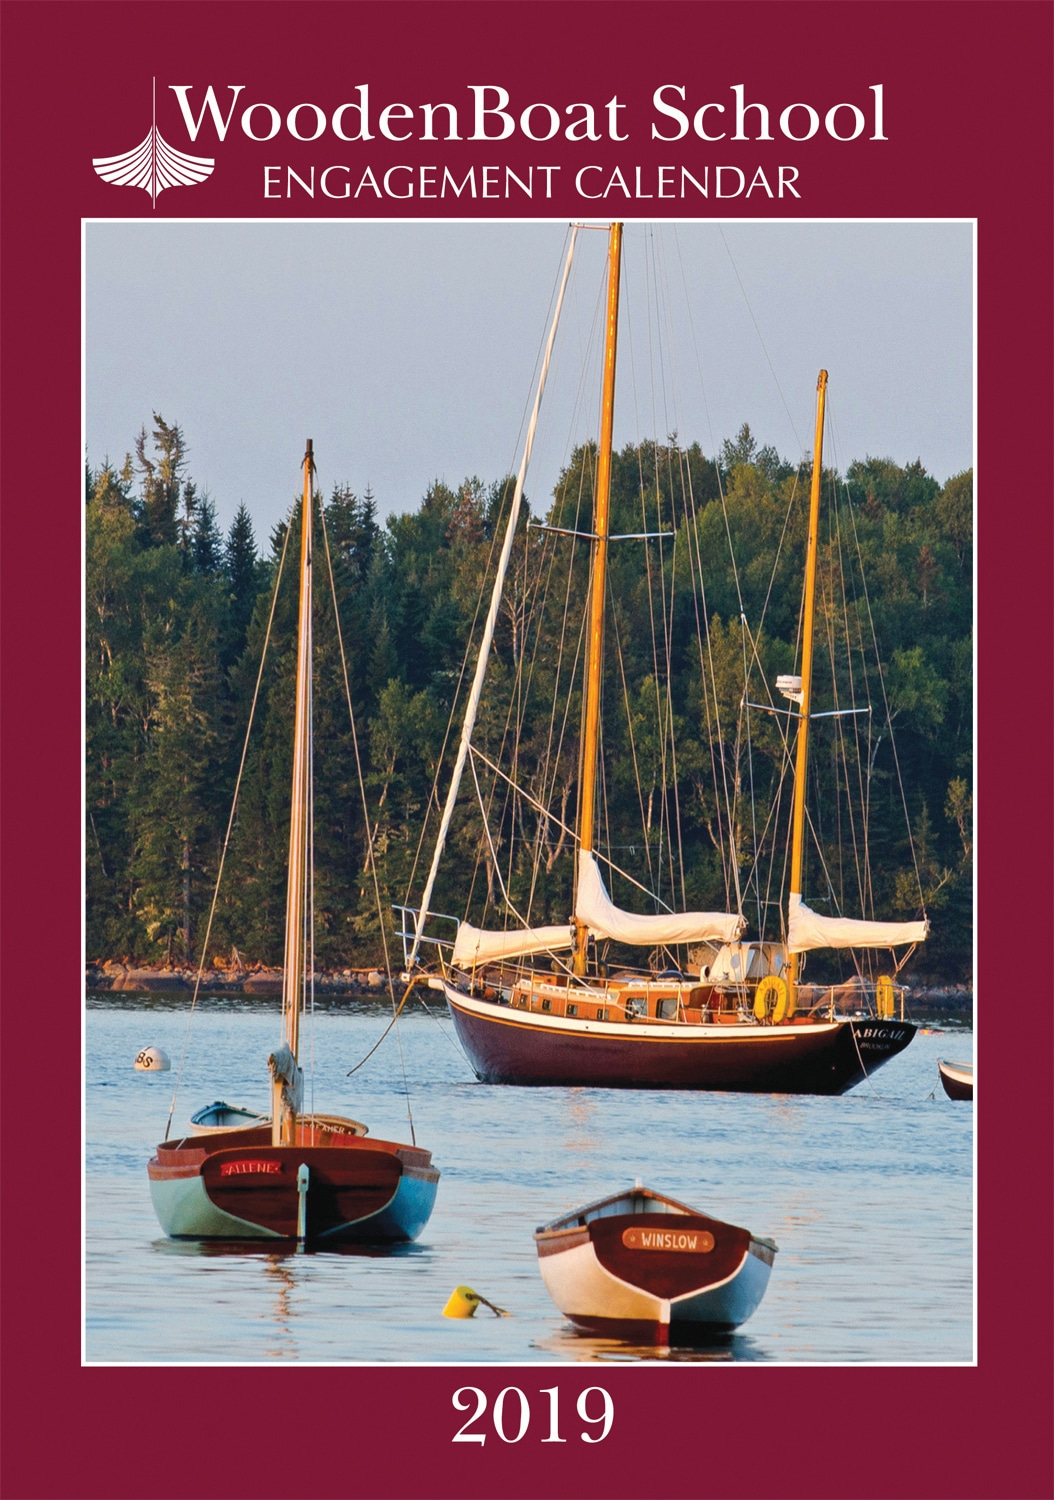 WoodenBoat-School-Engagement-Calendar-2019